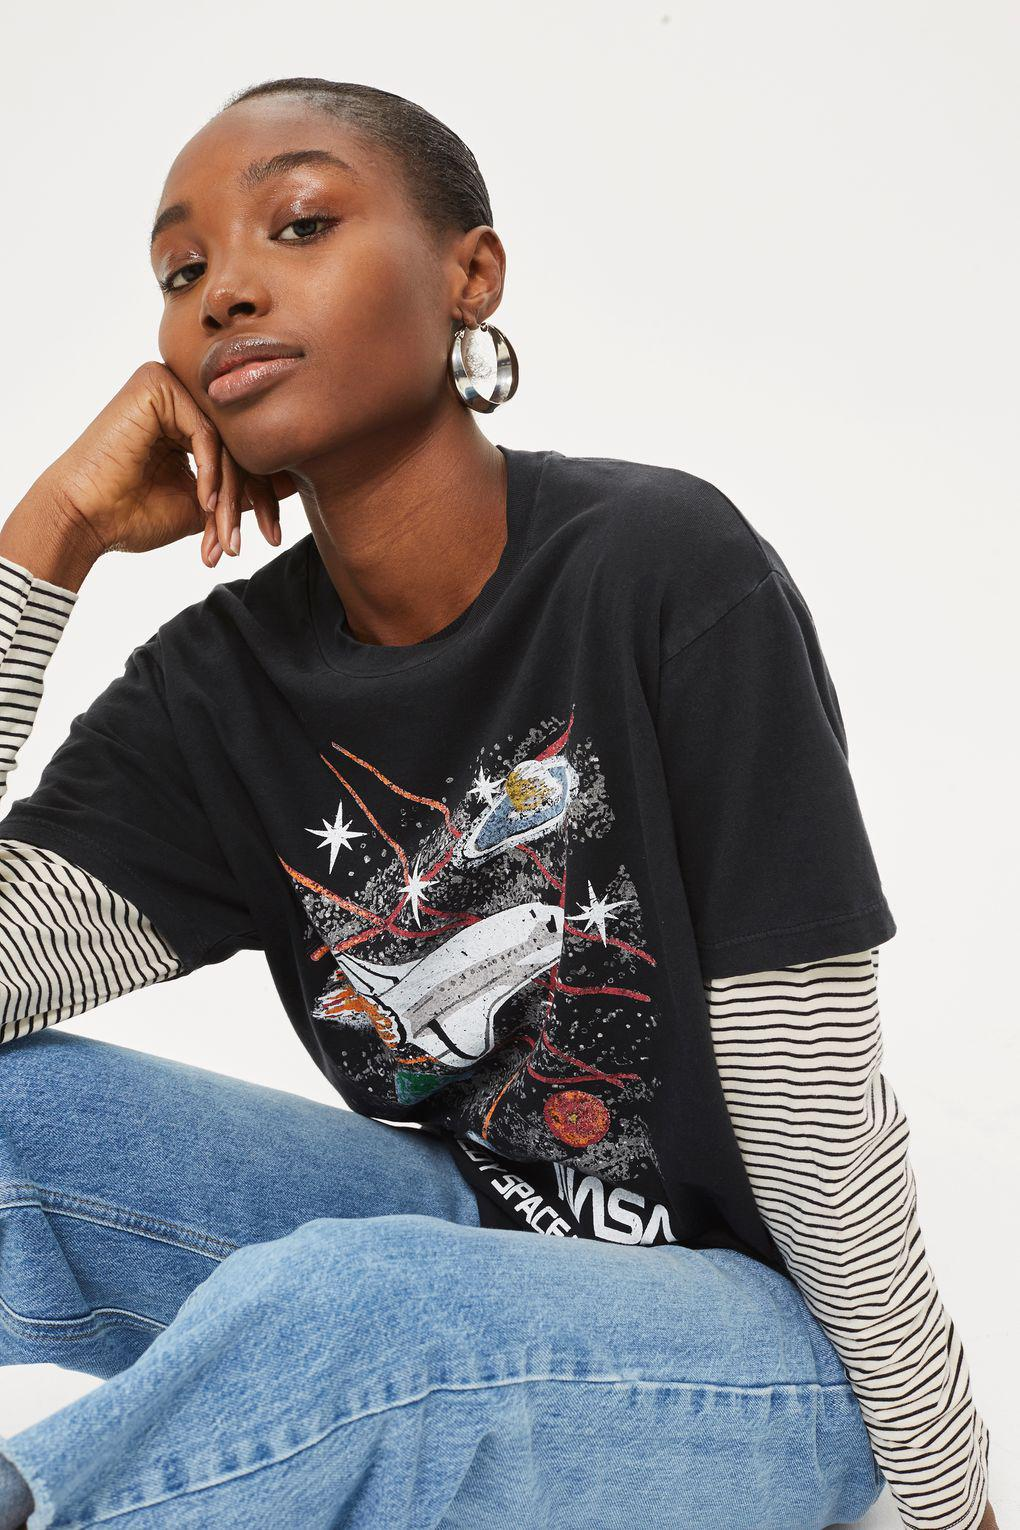 40d39898 TOPSHOP Nasa Kennedy Space T-shirt By Tee & Cake in Black - Lyst